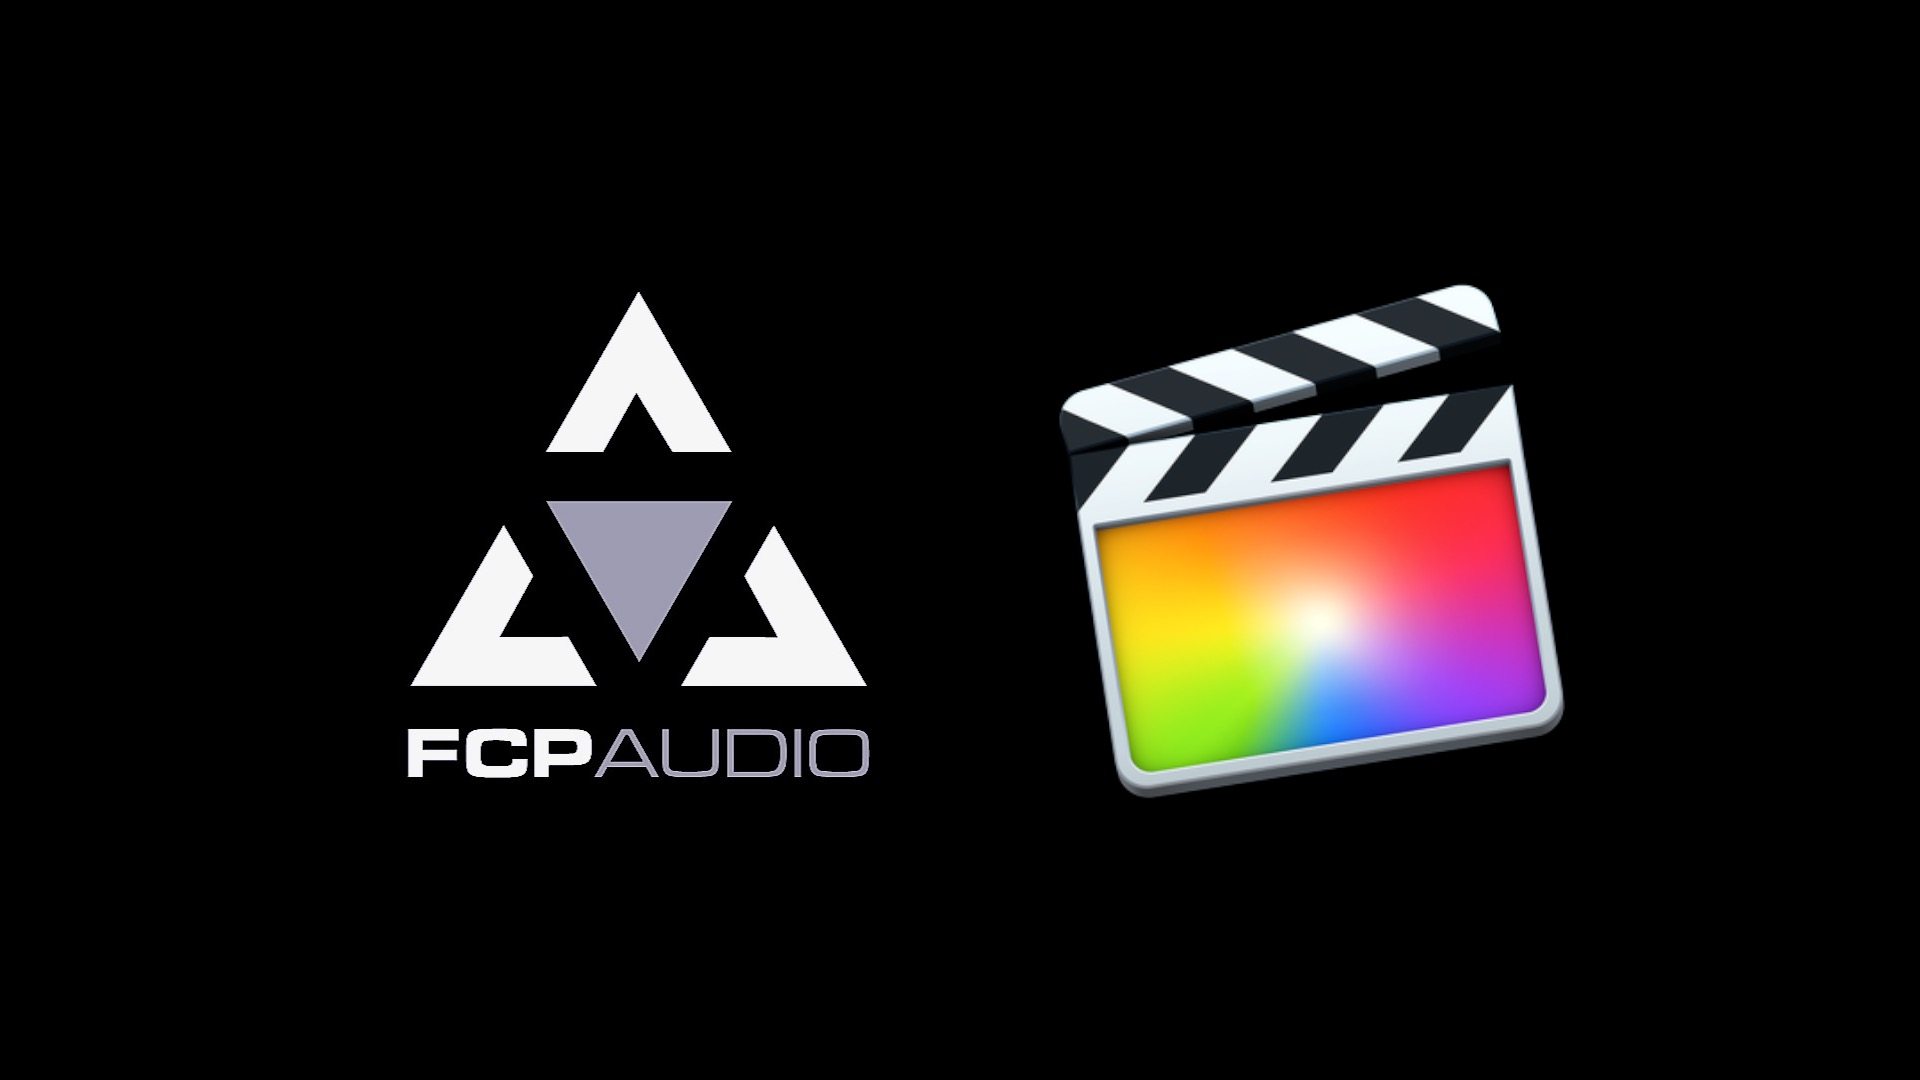 What's new in Final Cut Pro X Pro world? Velvet Boogie royalty free disco music